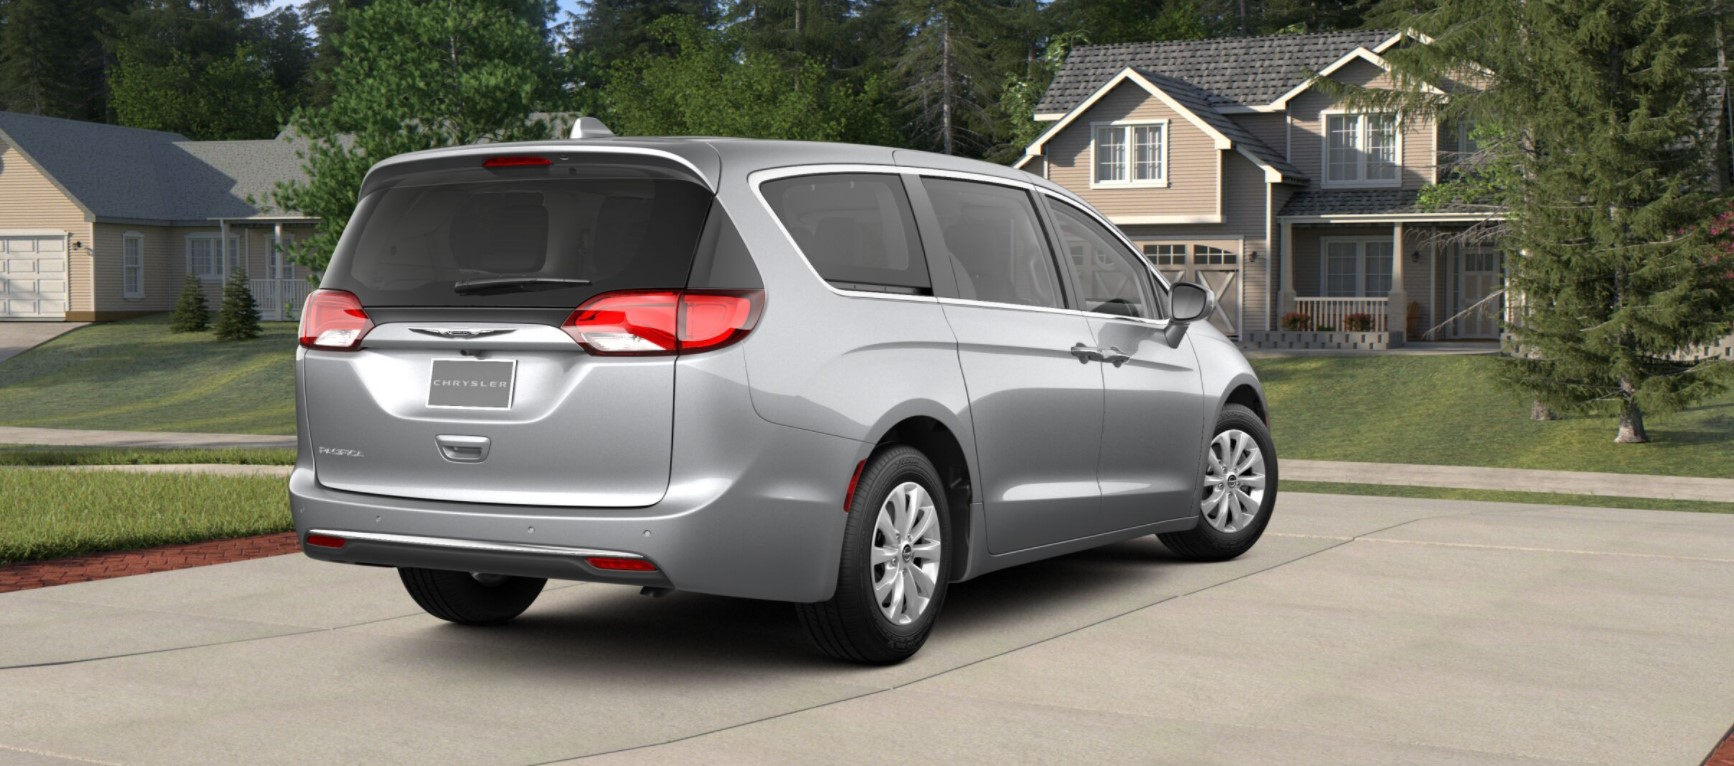 2018 Chrysler Pacifica Touring Plus Rear Silver Exterior